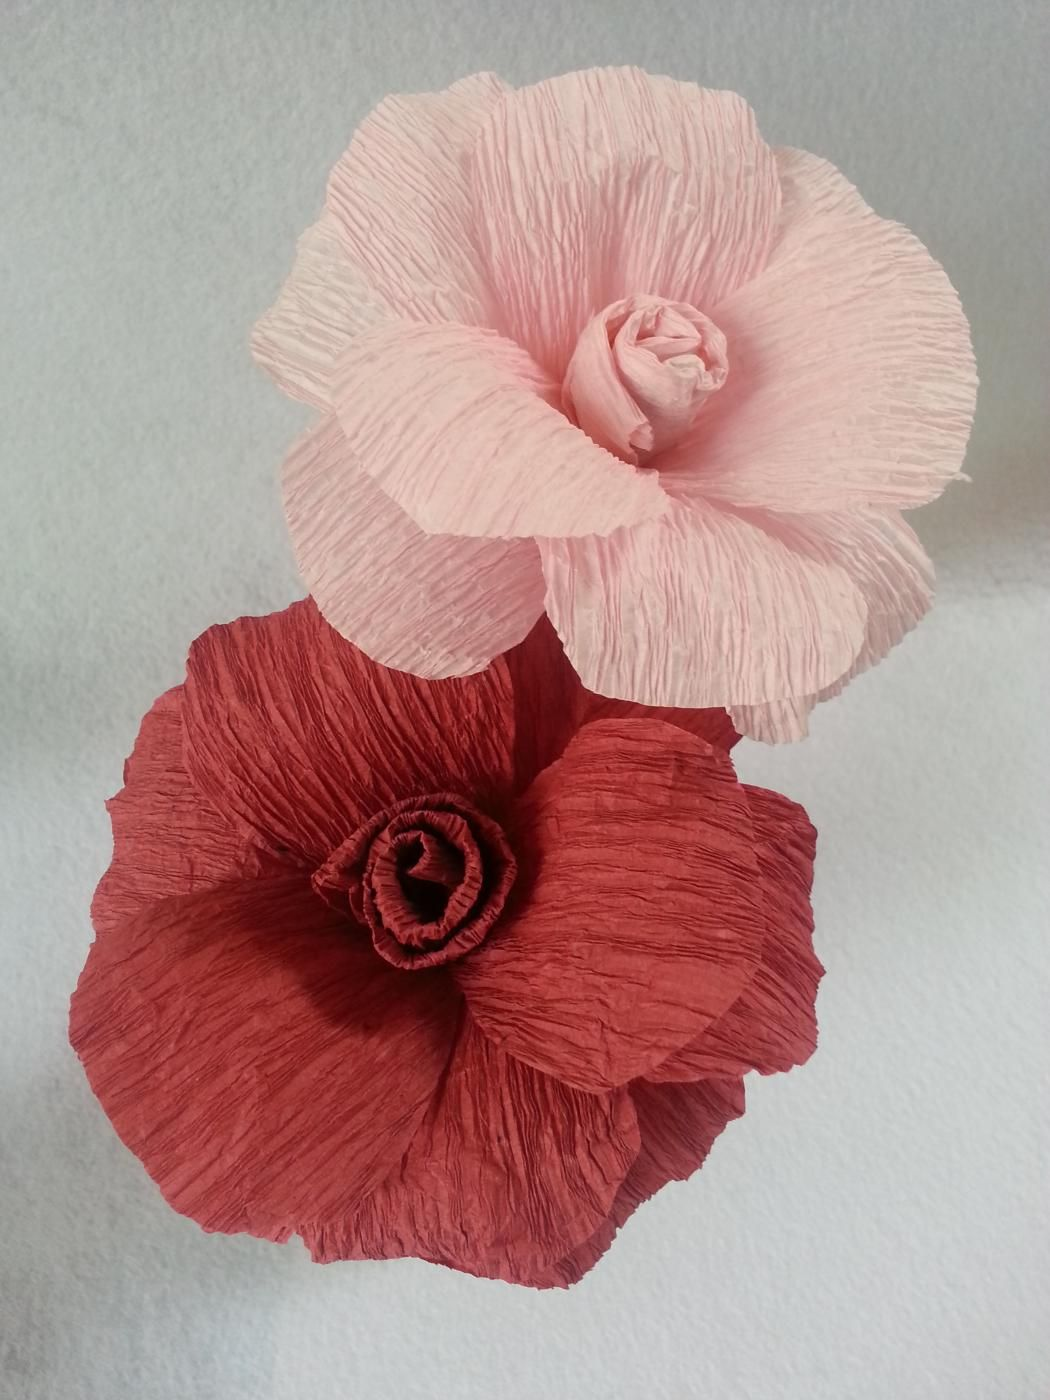 How To Make Crepe Paper Flowers Dyi Pinterest Crepe Paper